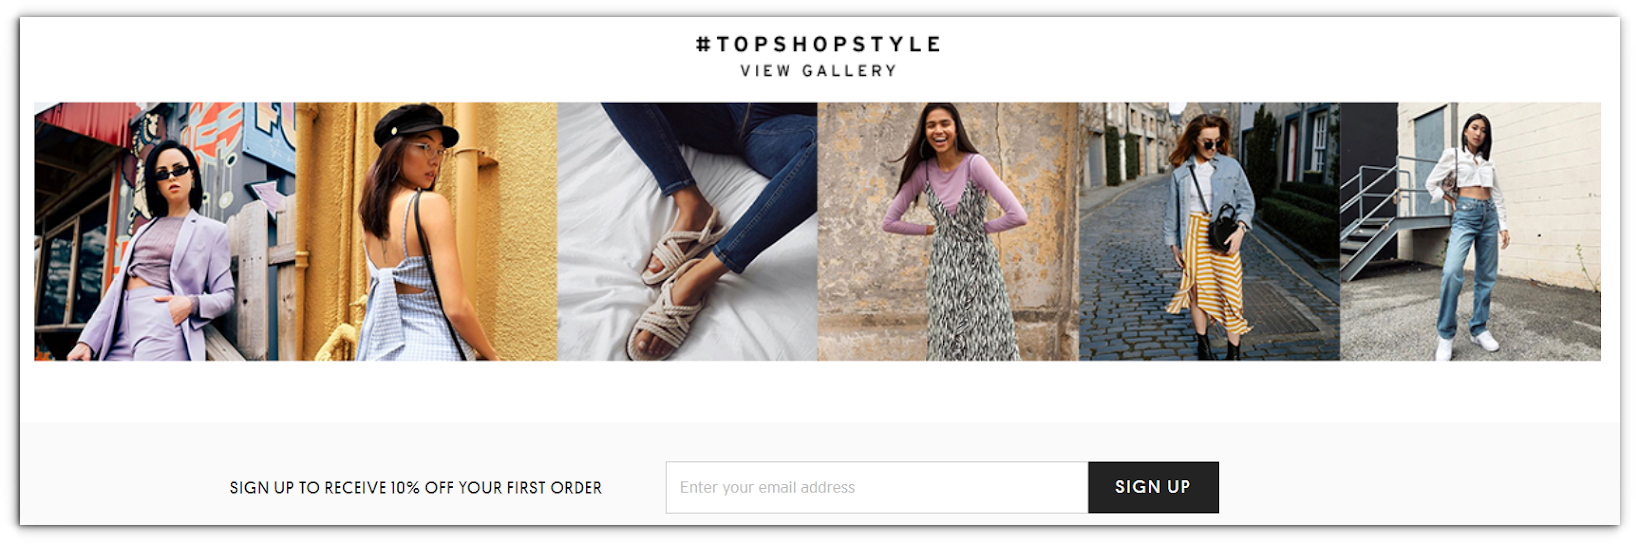 Top Shop - Ecommerce Business - Sendlane